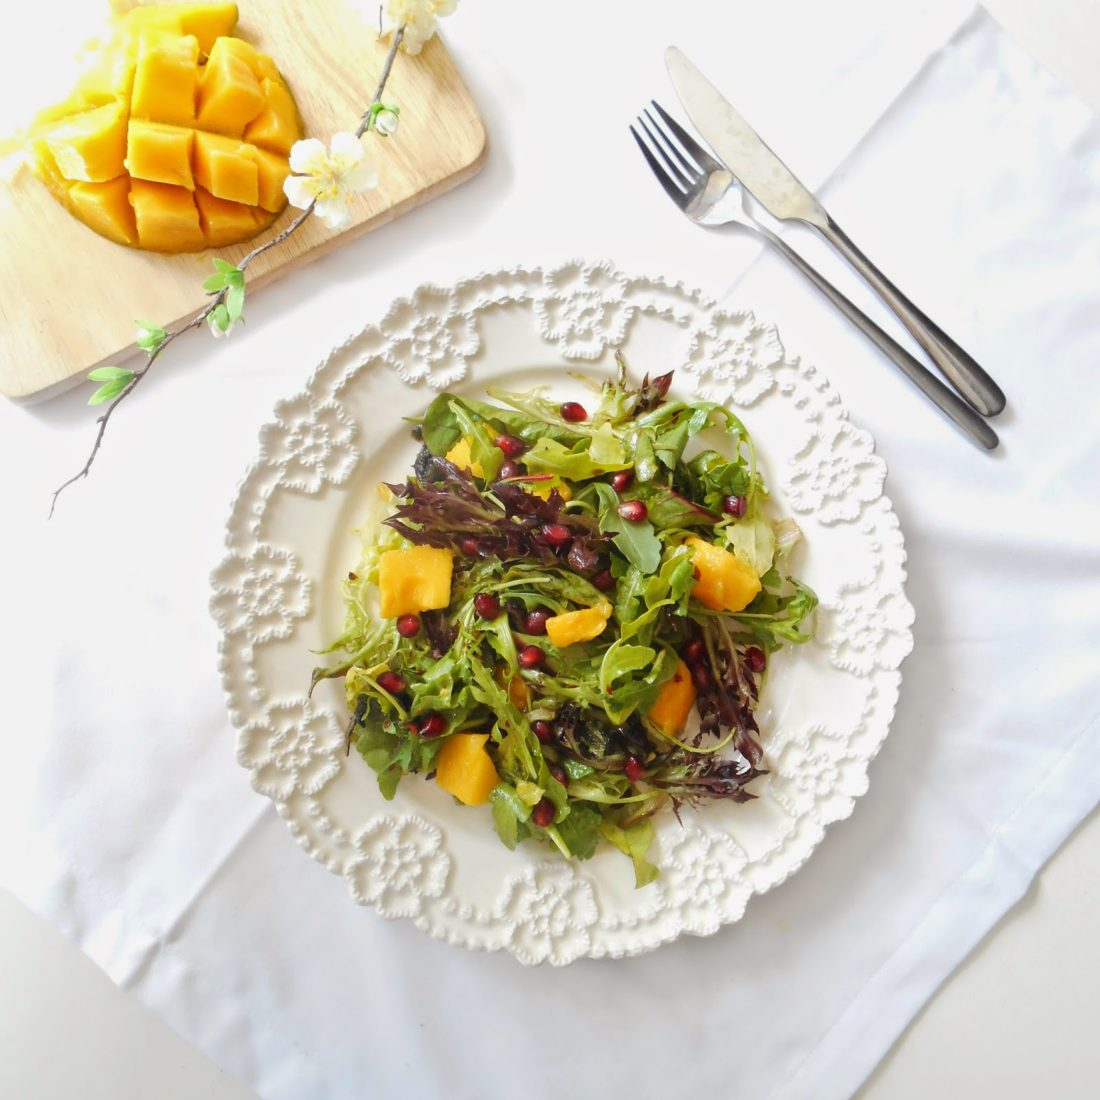 Mango and Rocket Salad with a Chilli Lime Dressing